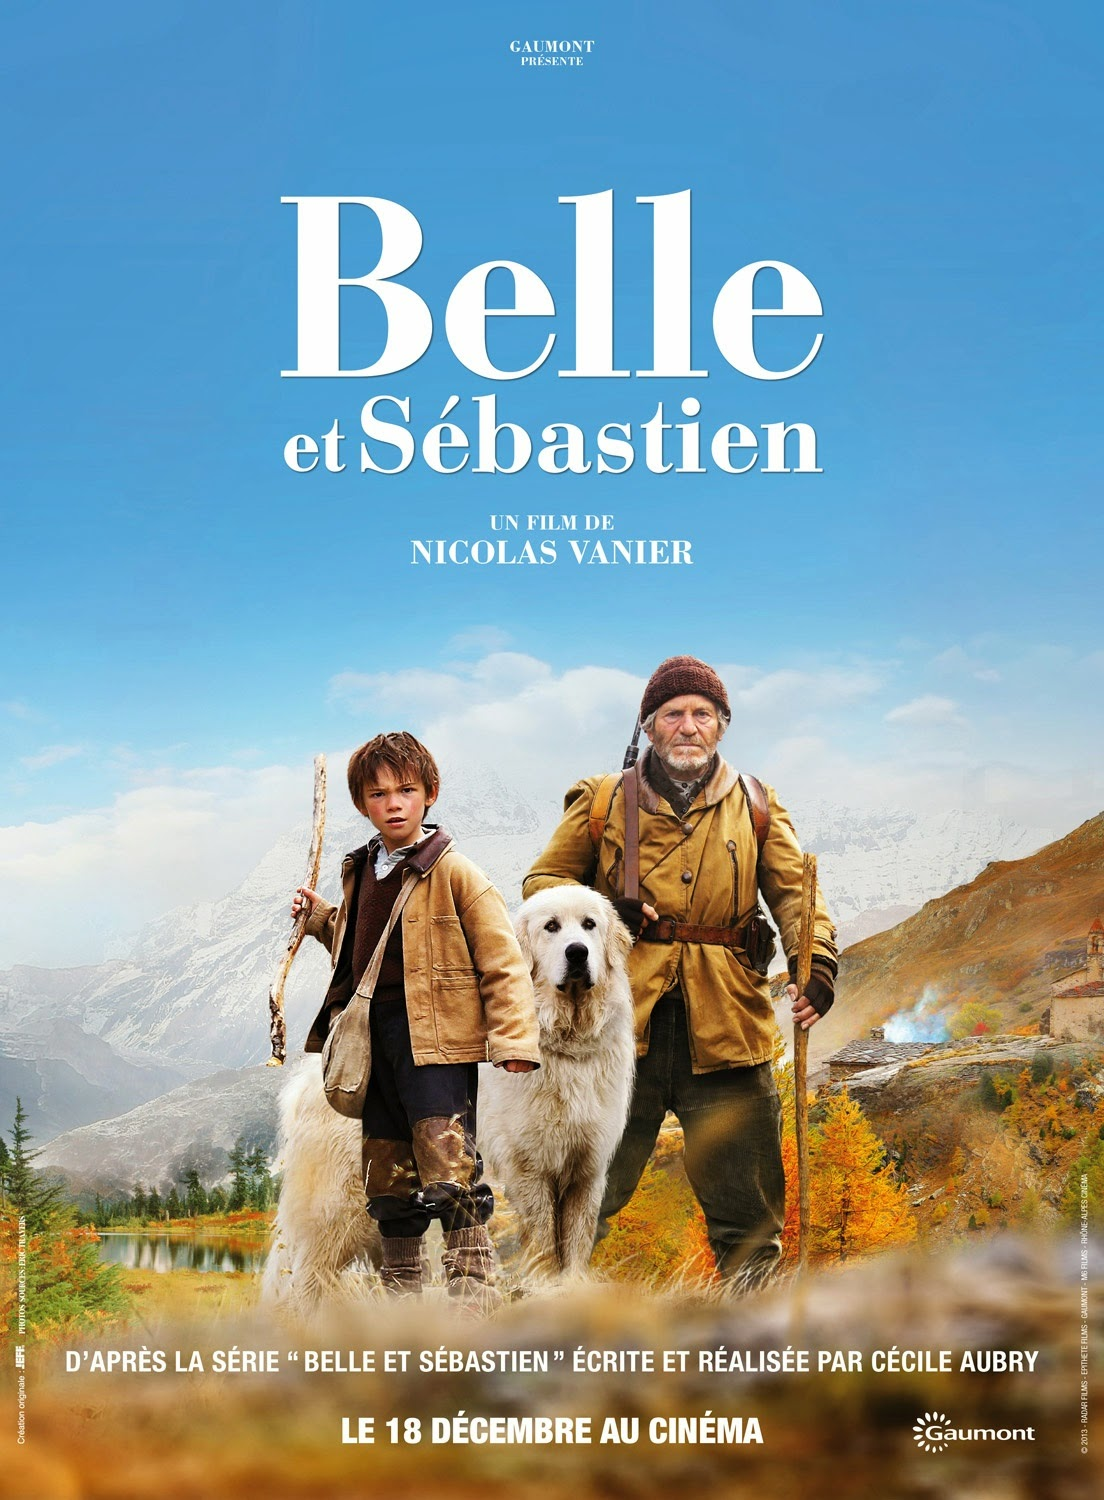 pasha 39 s film reviews etc mfff movie review belle and sebastian belle et sebastien. Black Bedroom Furniture Sets. Home Design Ideas